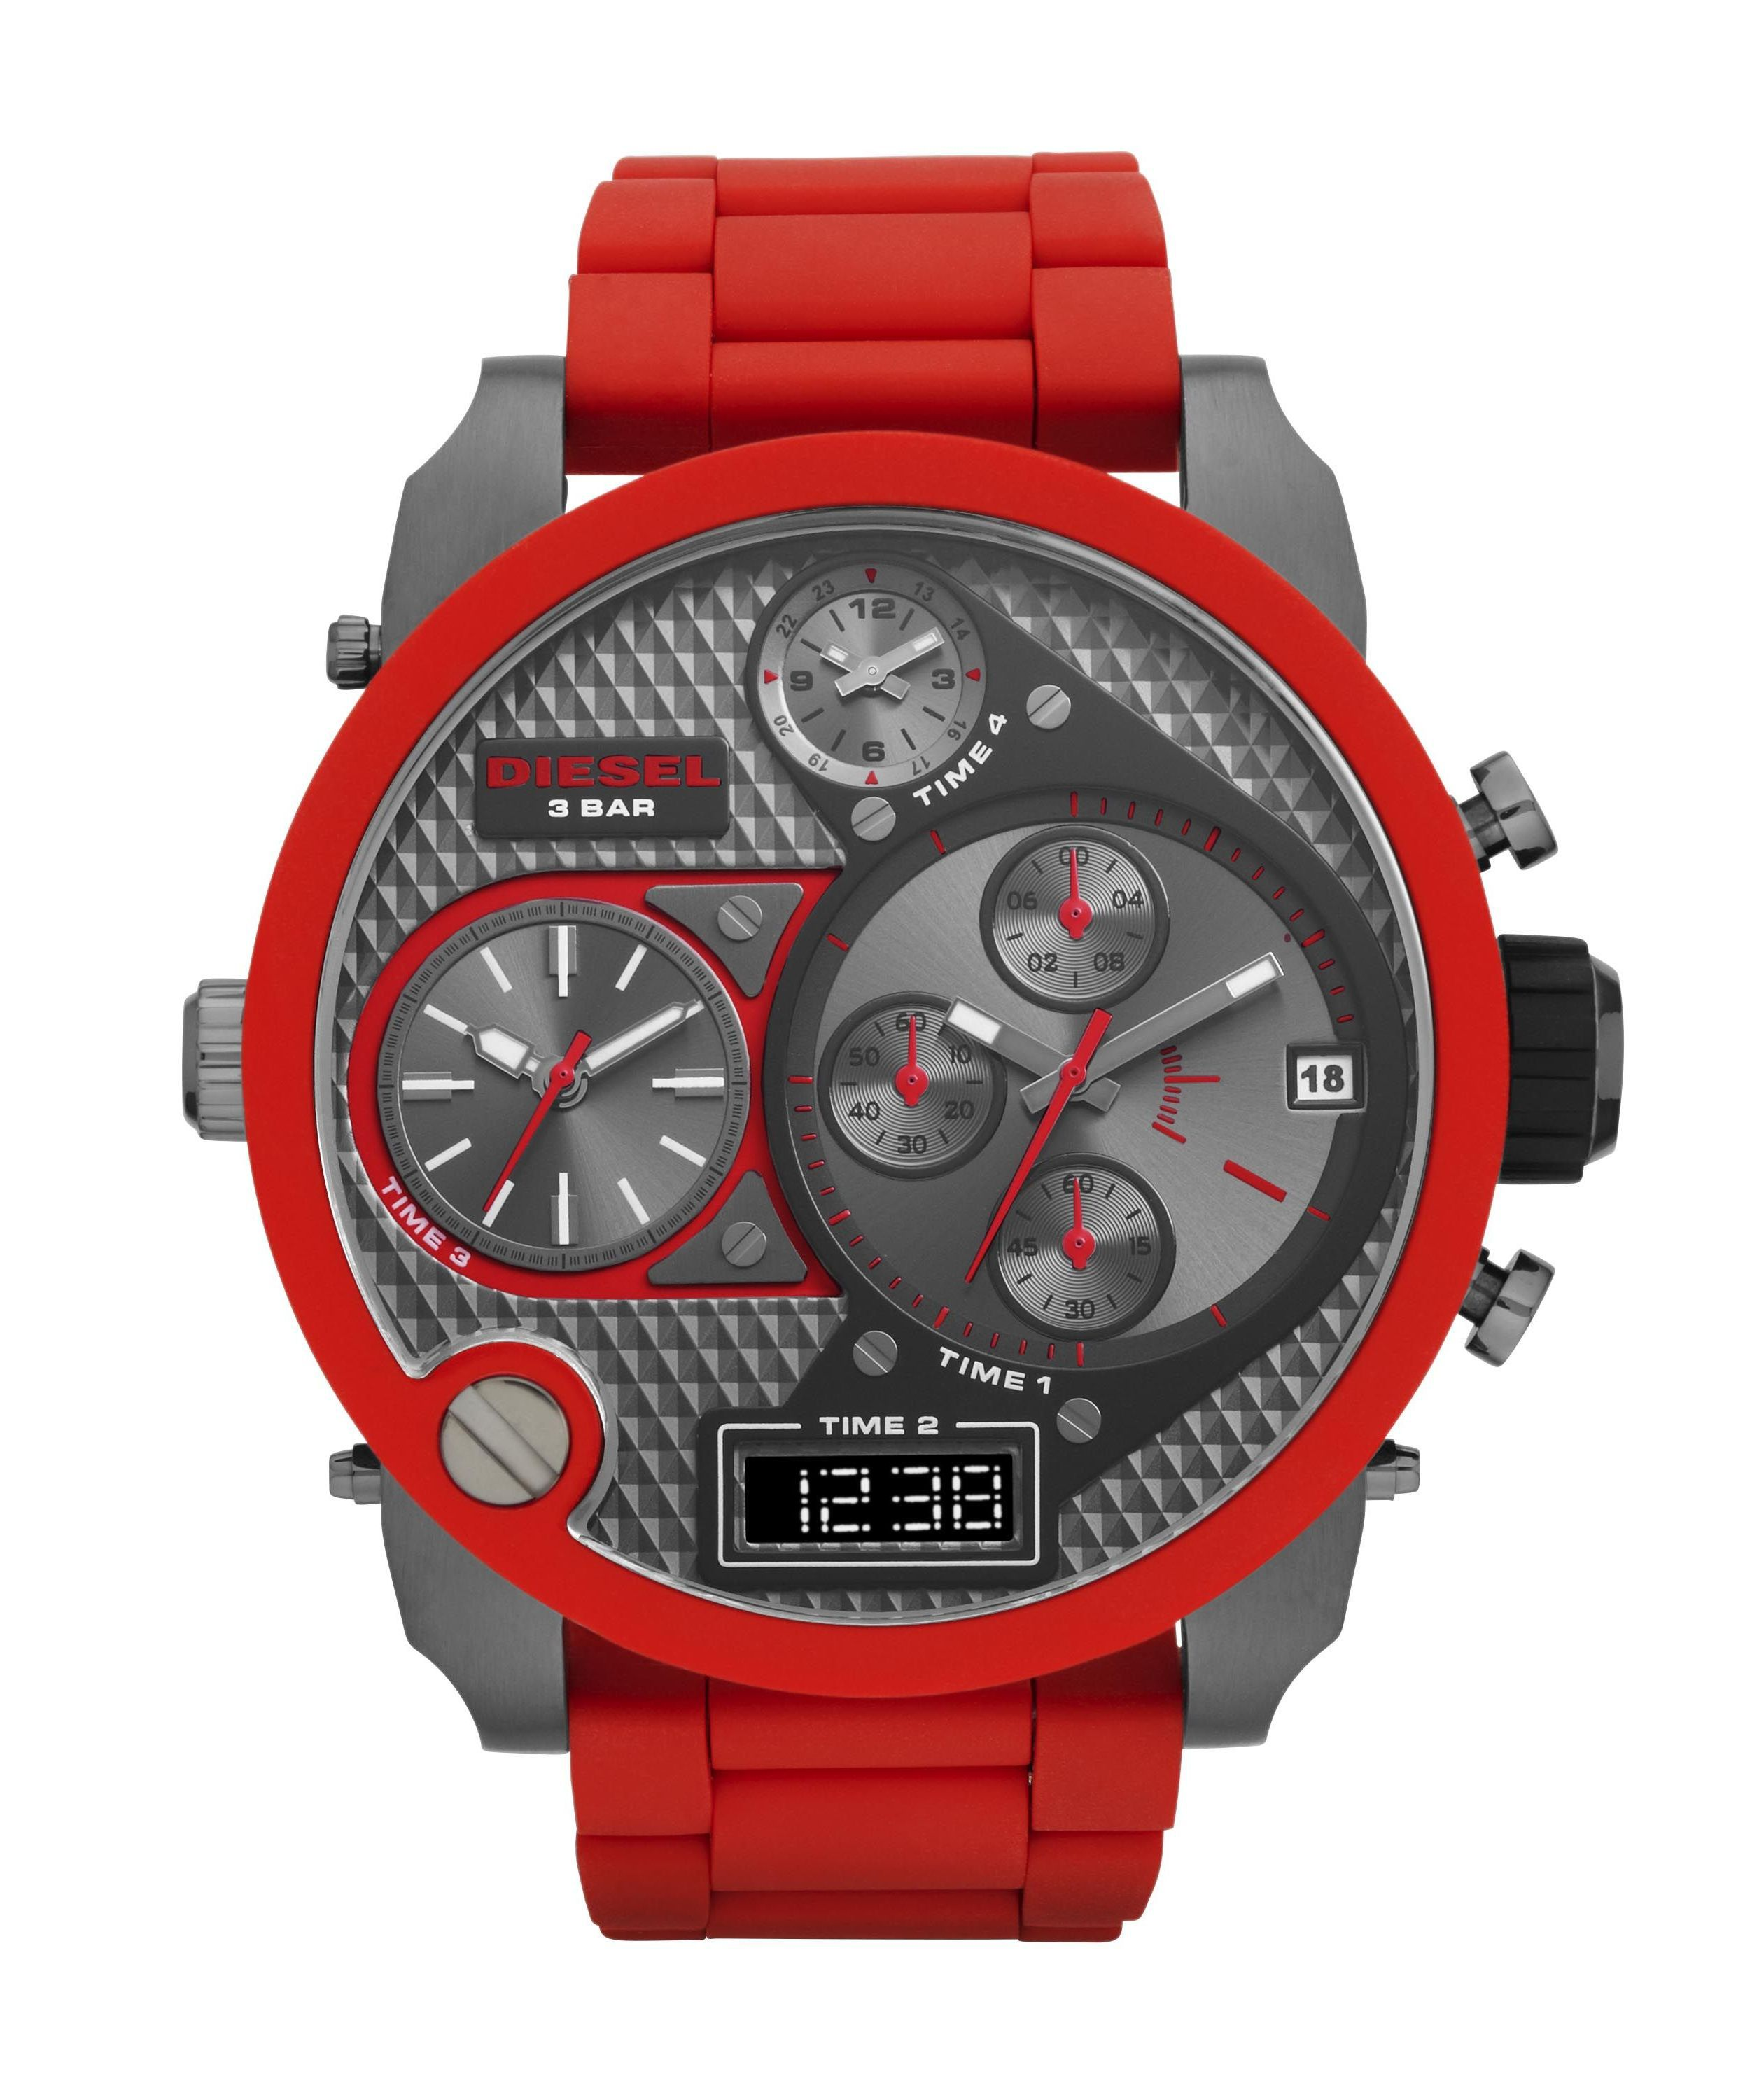 Diesel DZ7279 SBA silicone/stainless steel mens watch, Red